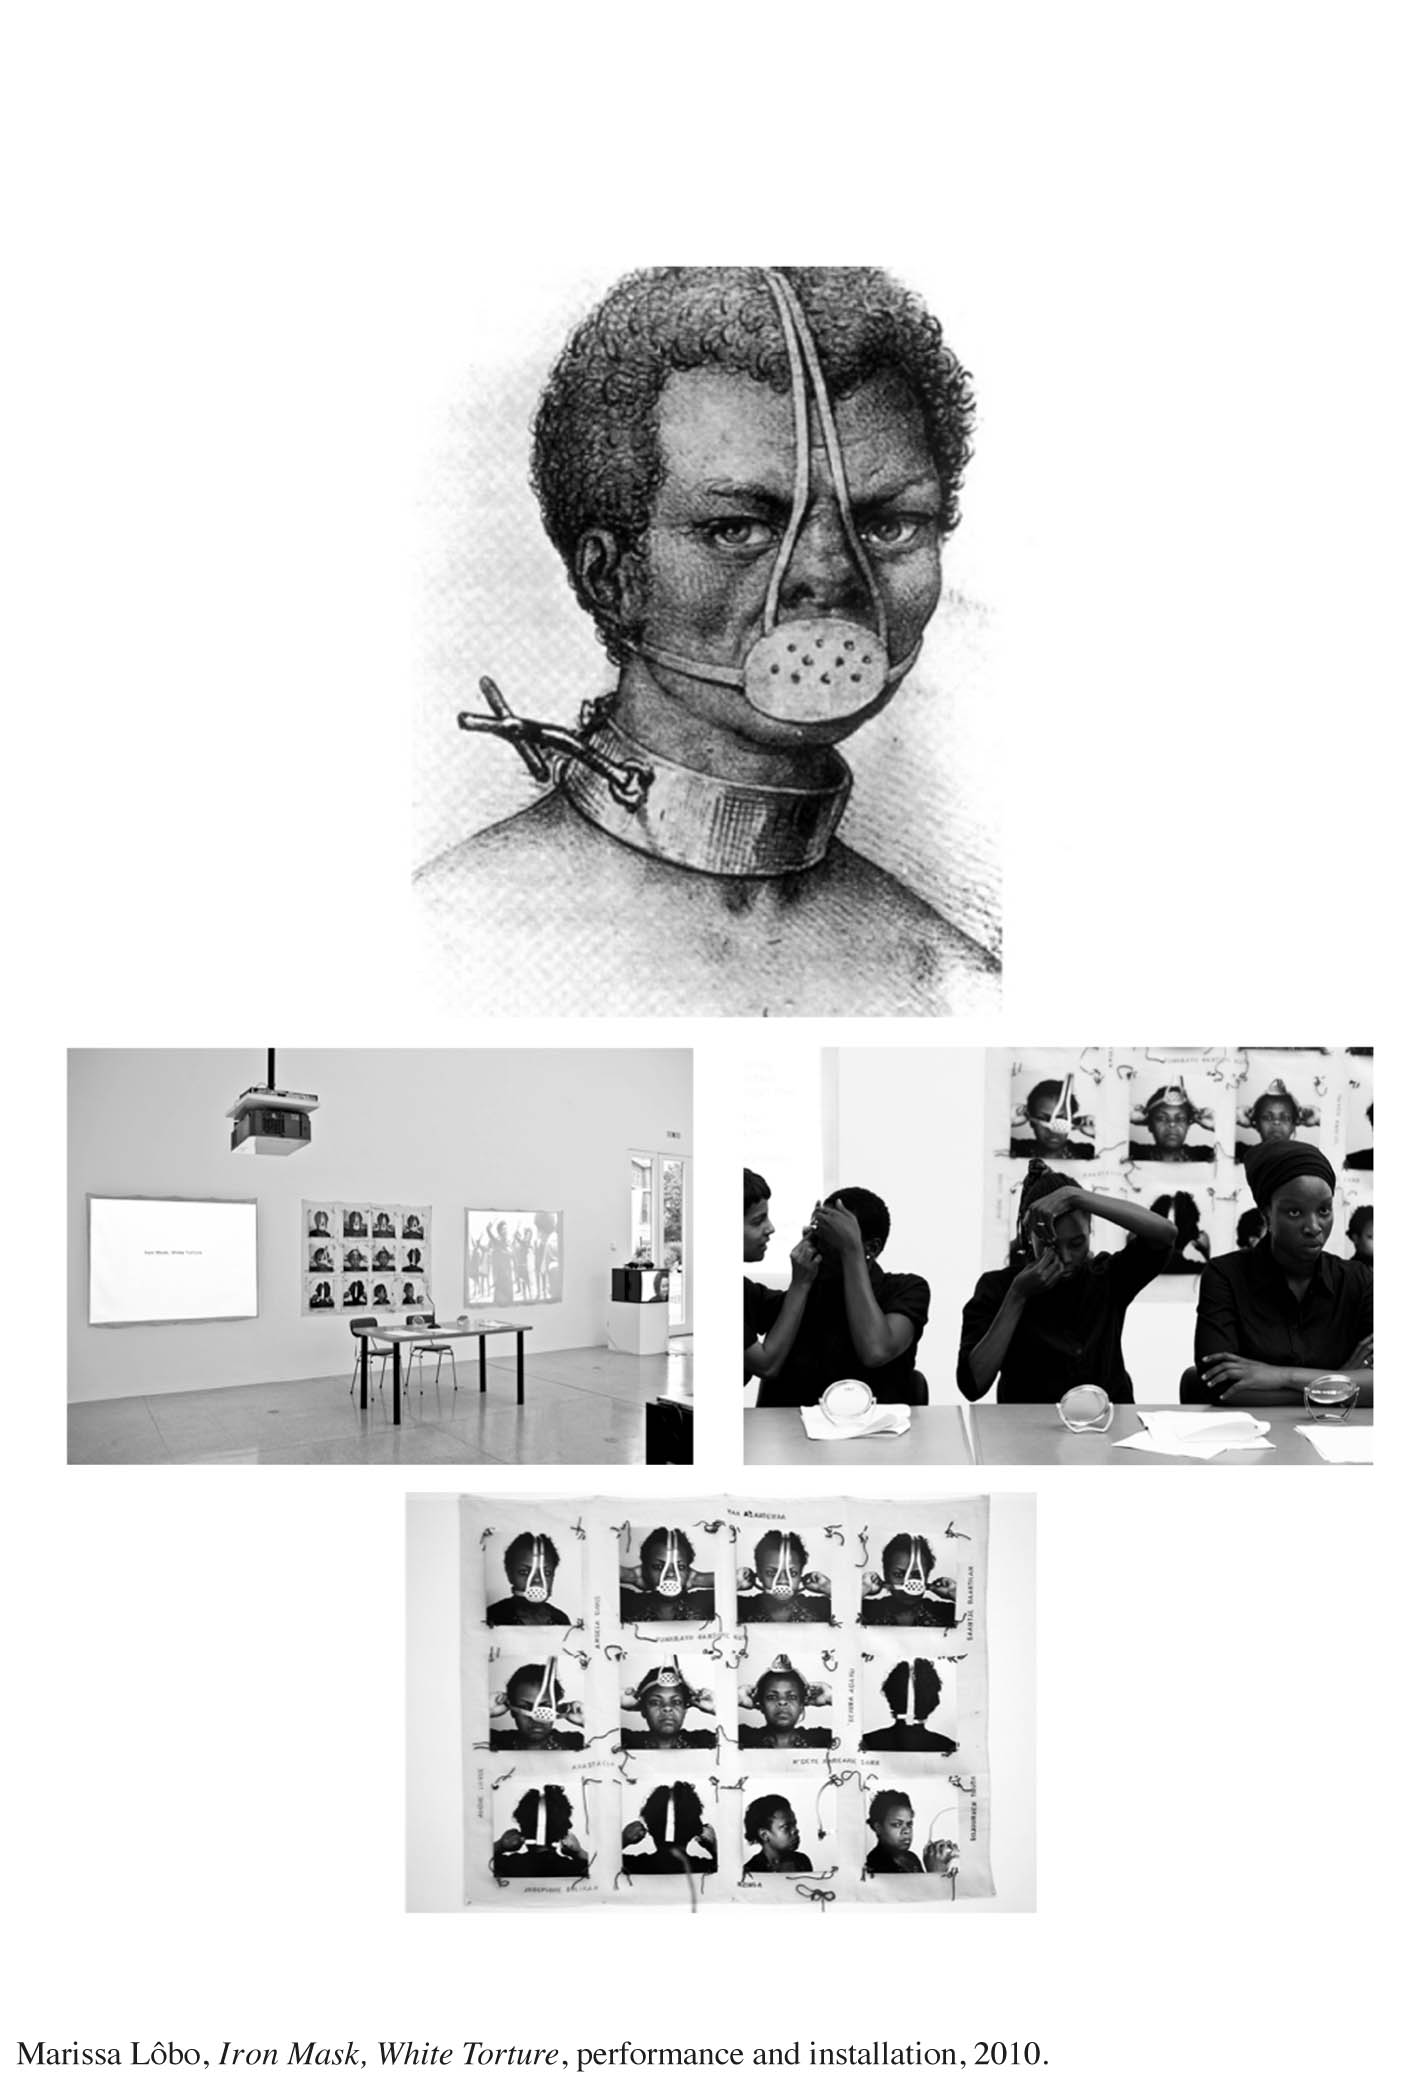 1Iron Mask, White Torture, performance and installation, conceived by Marissa Lôbo (1)